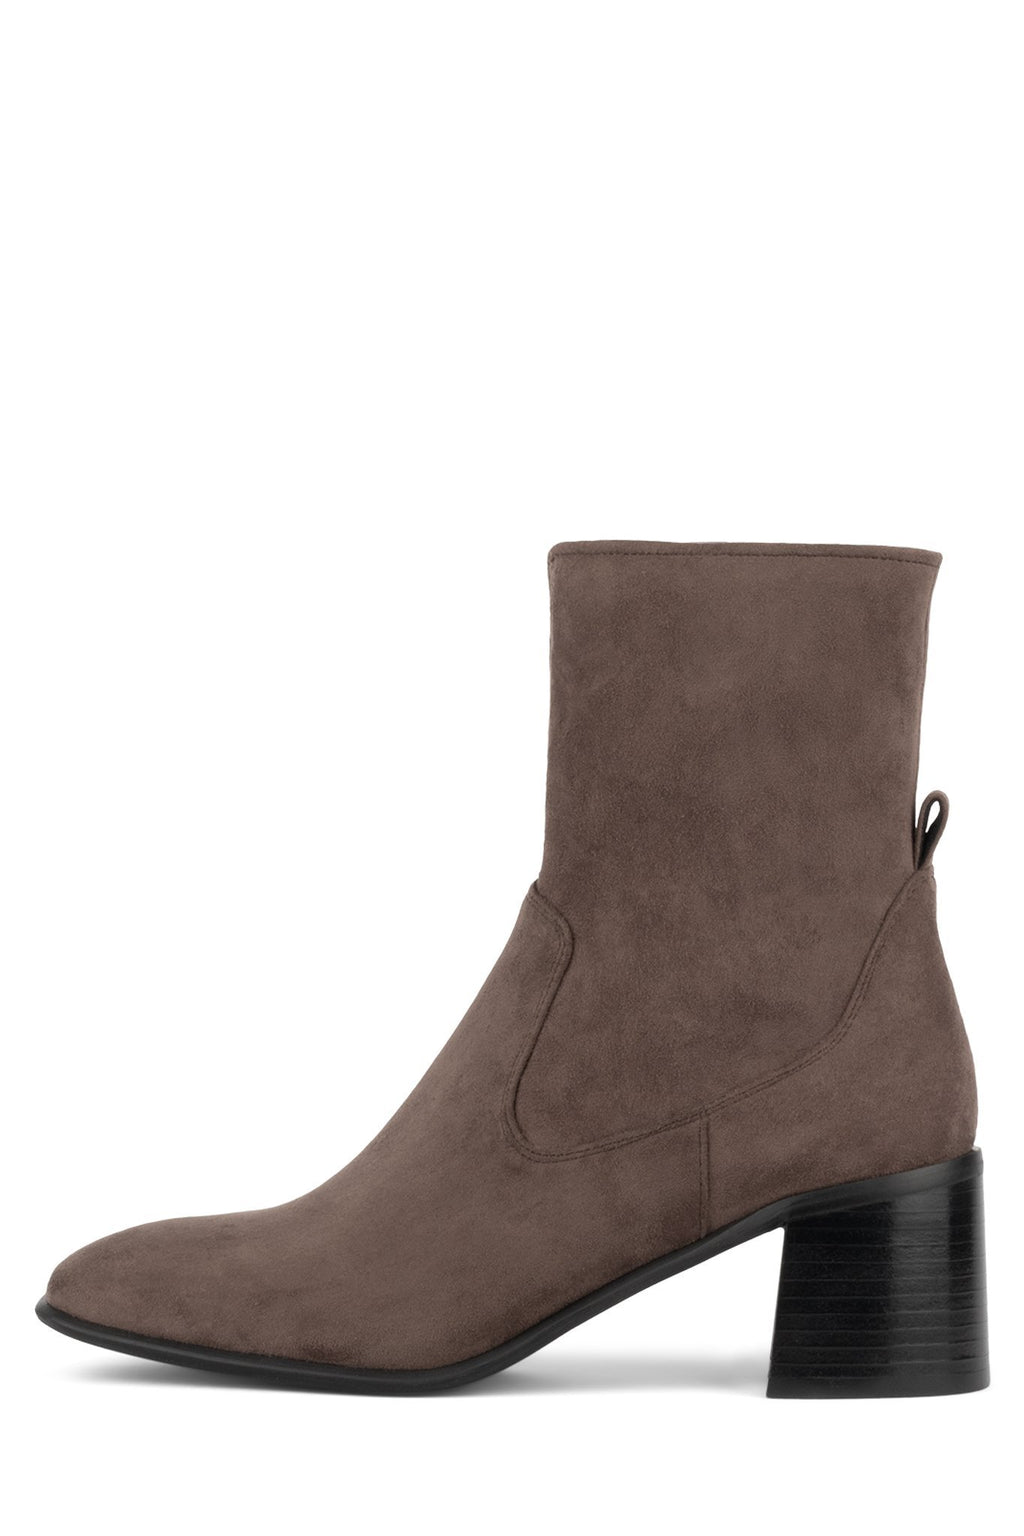 JEREM Bootie Jeffrey Campbell Taupe Suede 6